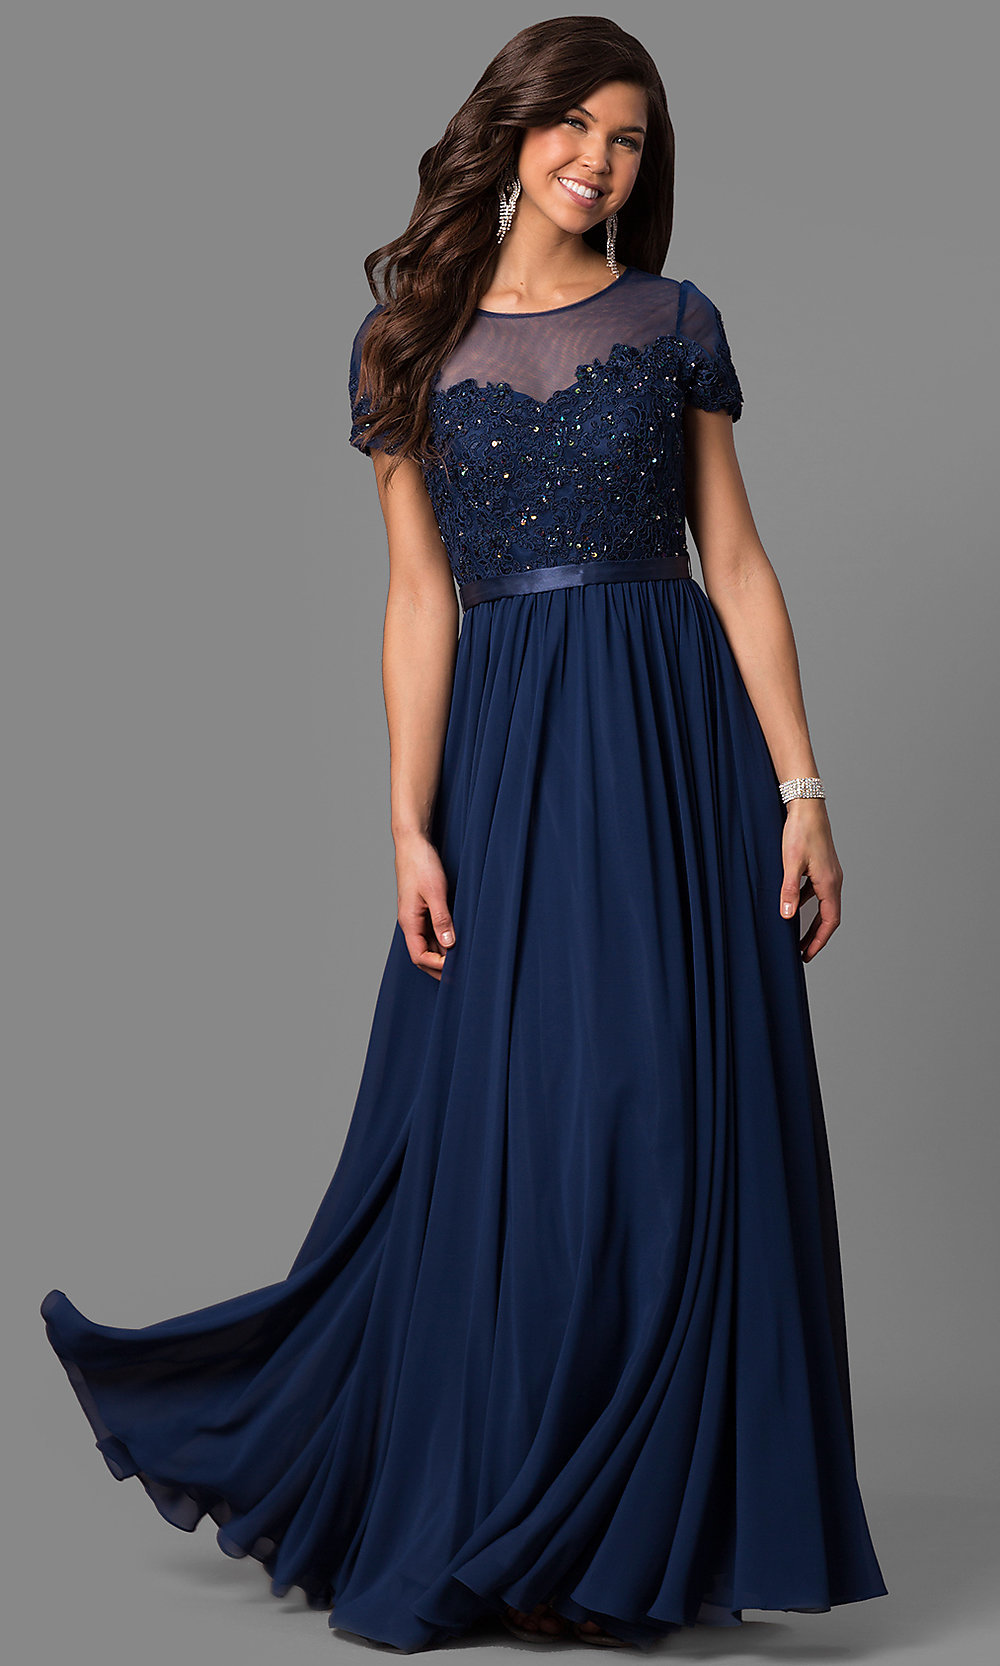 965c609ce271 Navy Blue Evening Short Dress